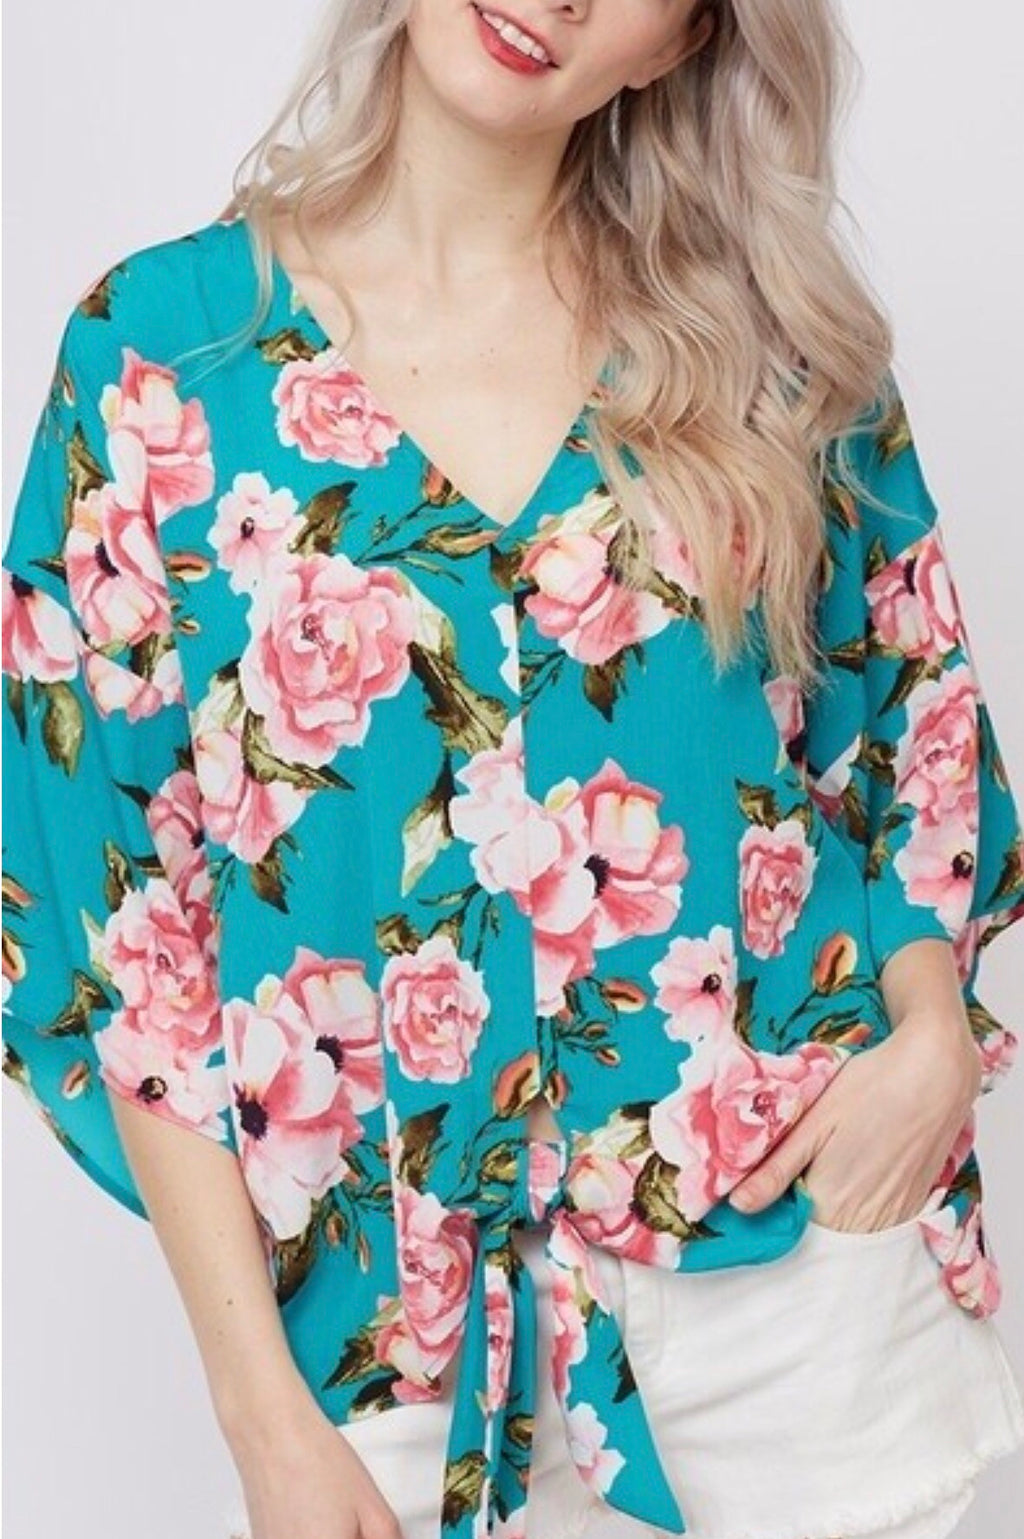 SPRING FRONT TIE FLORAL TOP